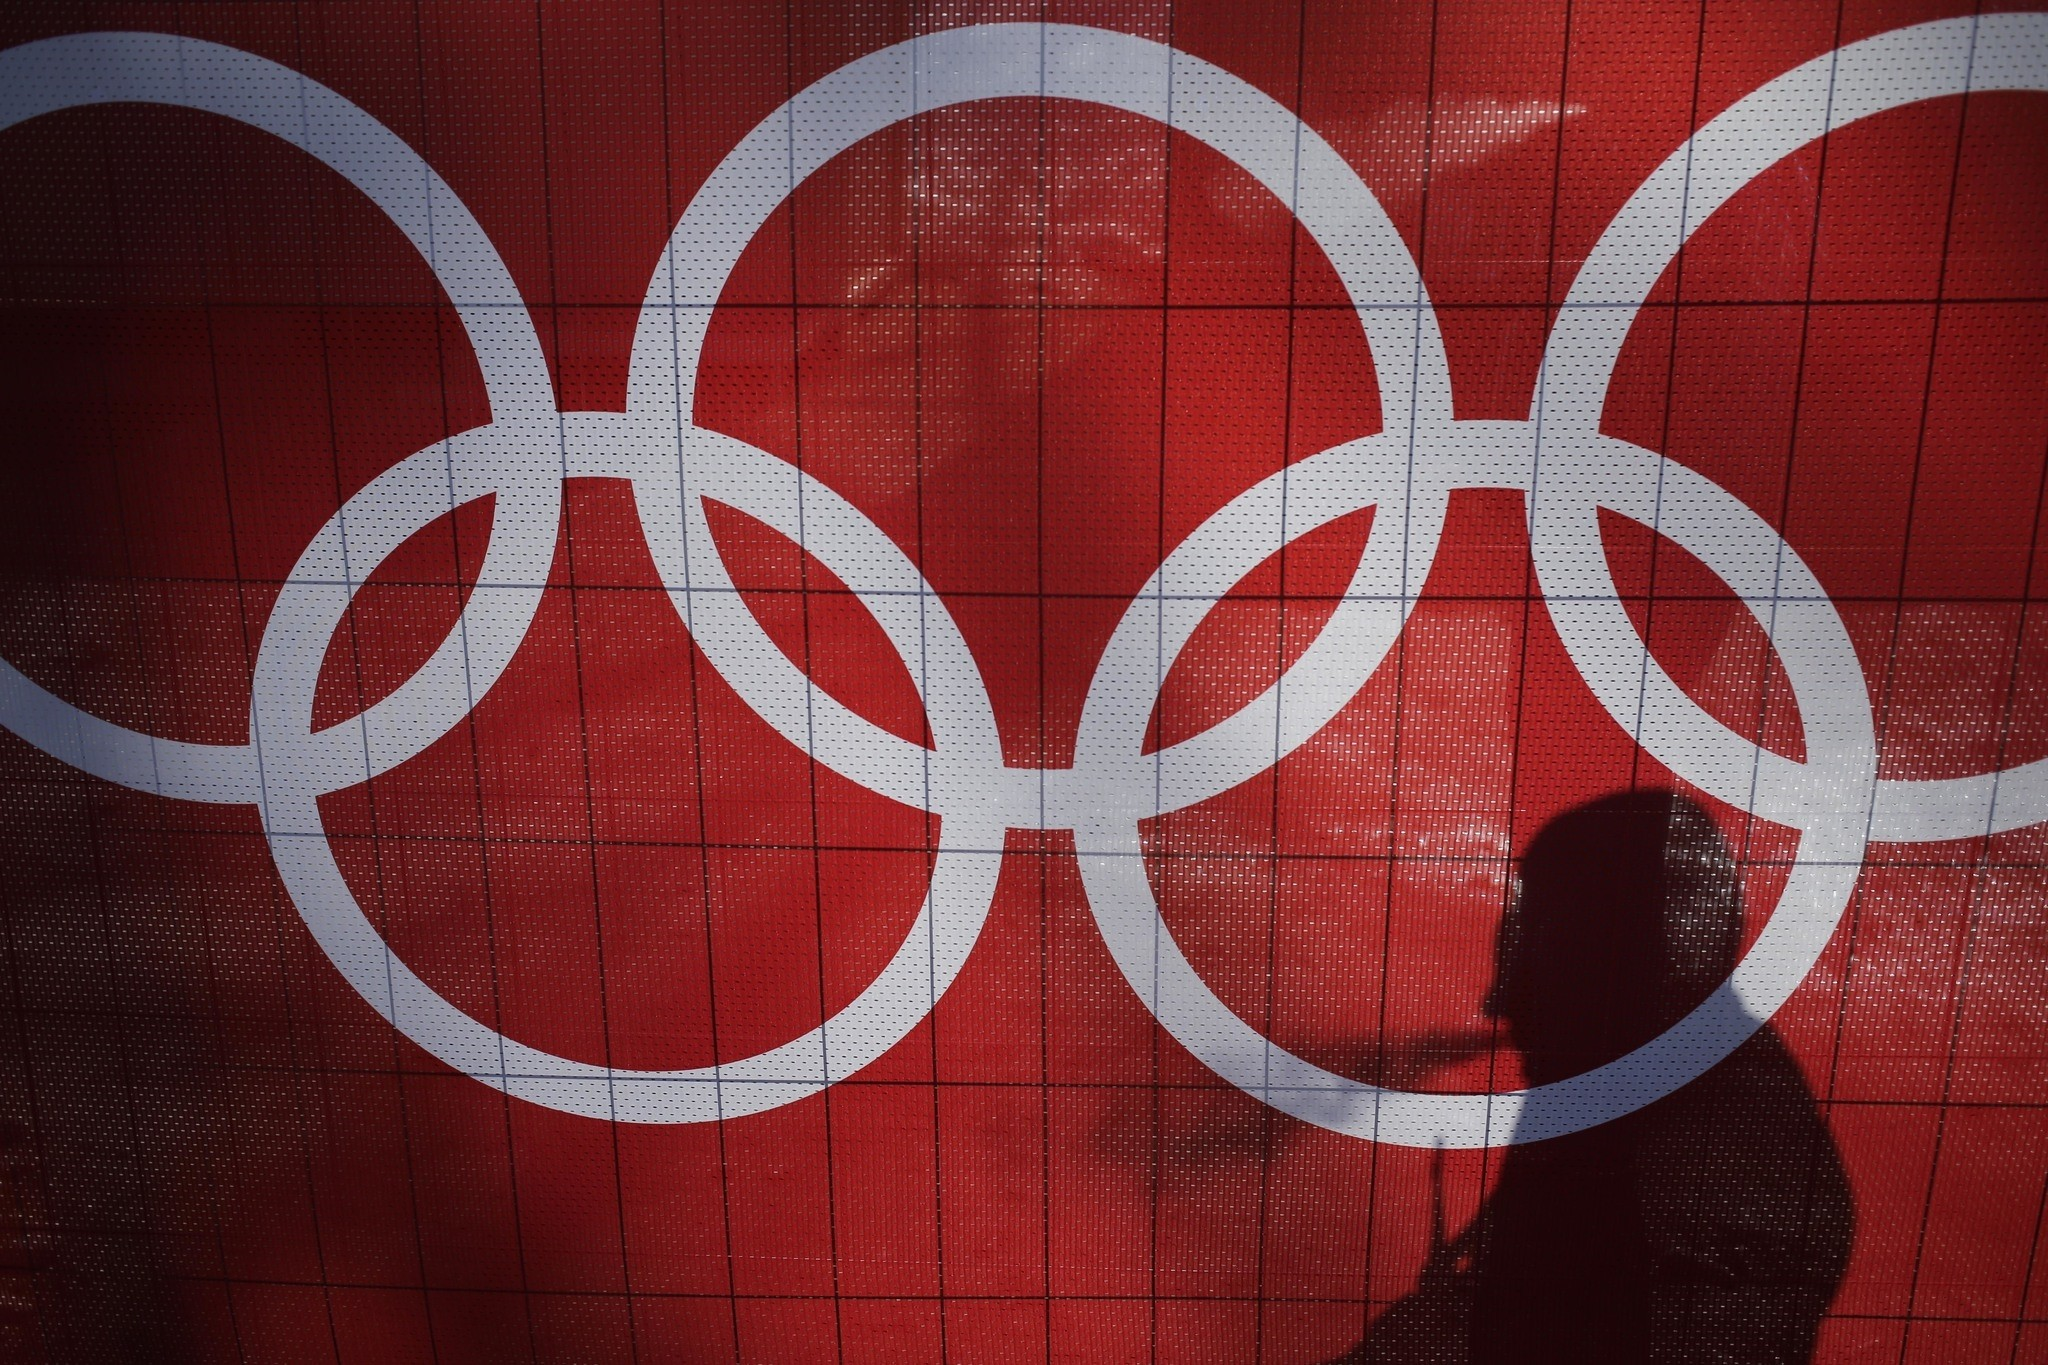 In this Feb. 15, 2014 file photo the shadow of a man is cast on the Olympic rings as he smokes at the Rosa Khutor Alpine Center, at the 2014 Winter Olympics in Krasnaya Polyana, Russia. (AP Photo)